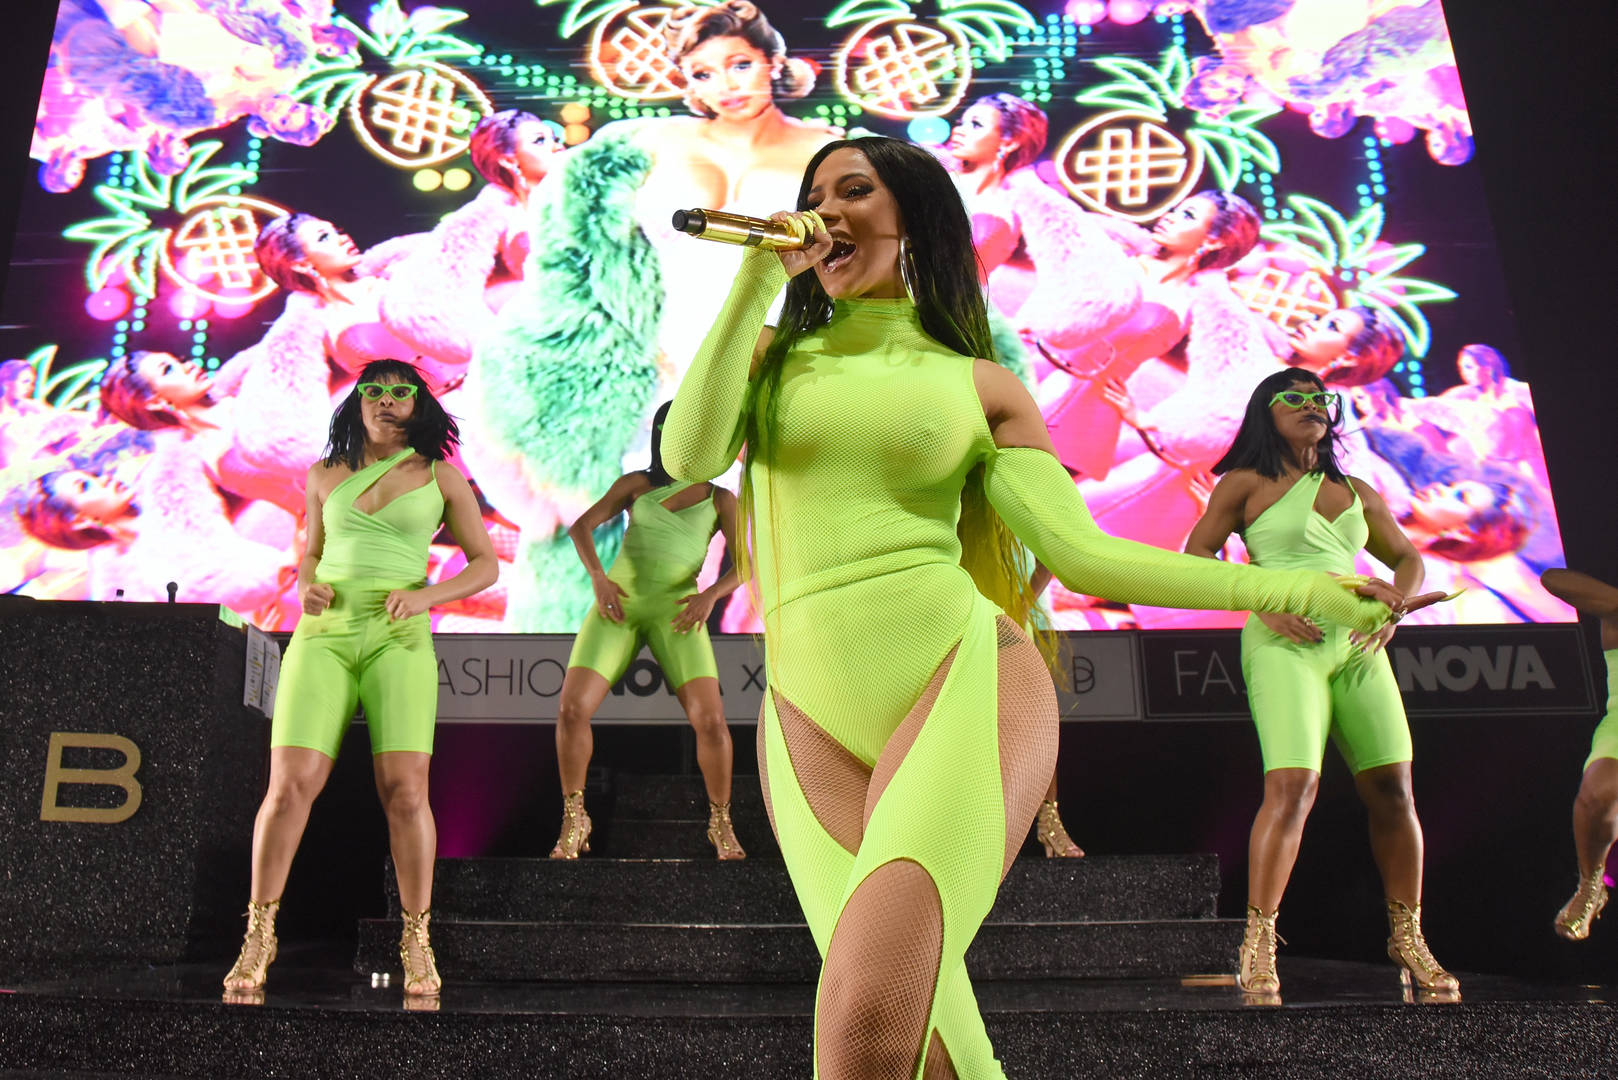 Cardi B Wants Blogger Death Threat Case Dropped, Denies Any Wrongdoing